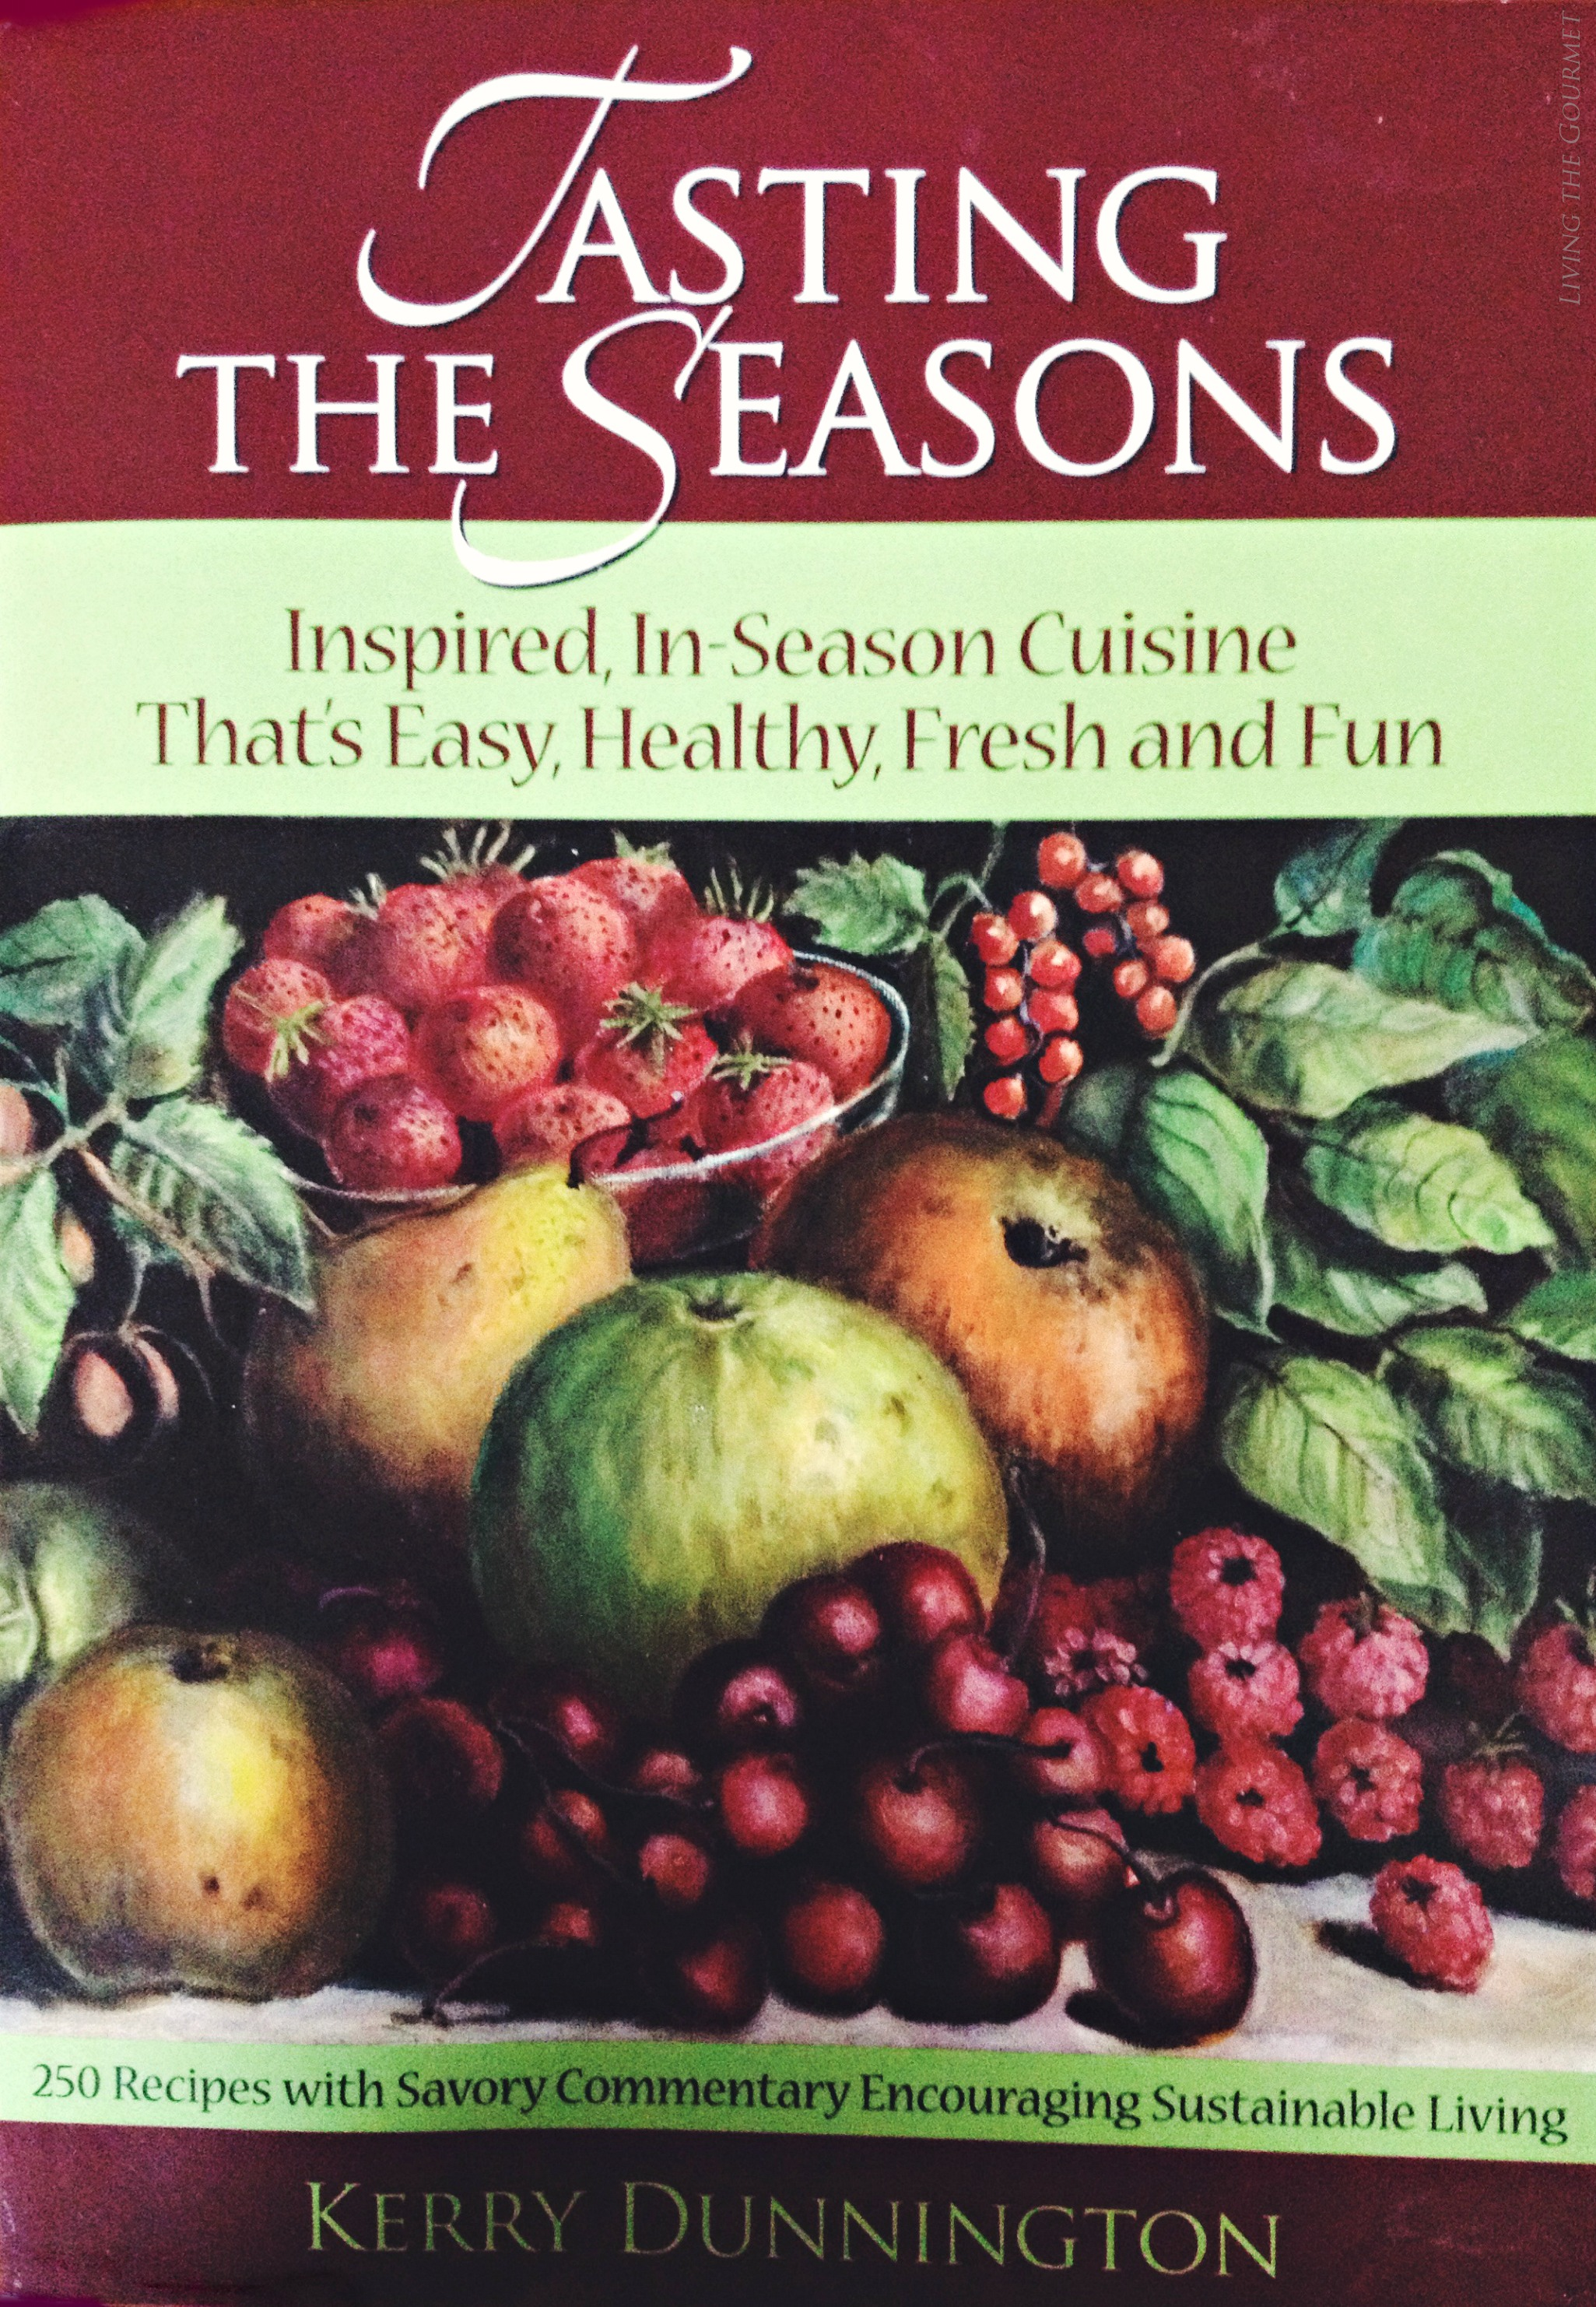 Tasting the Seasons: Interview w/ Kerry Dunnington & A Recipe for Popovers